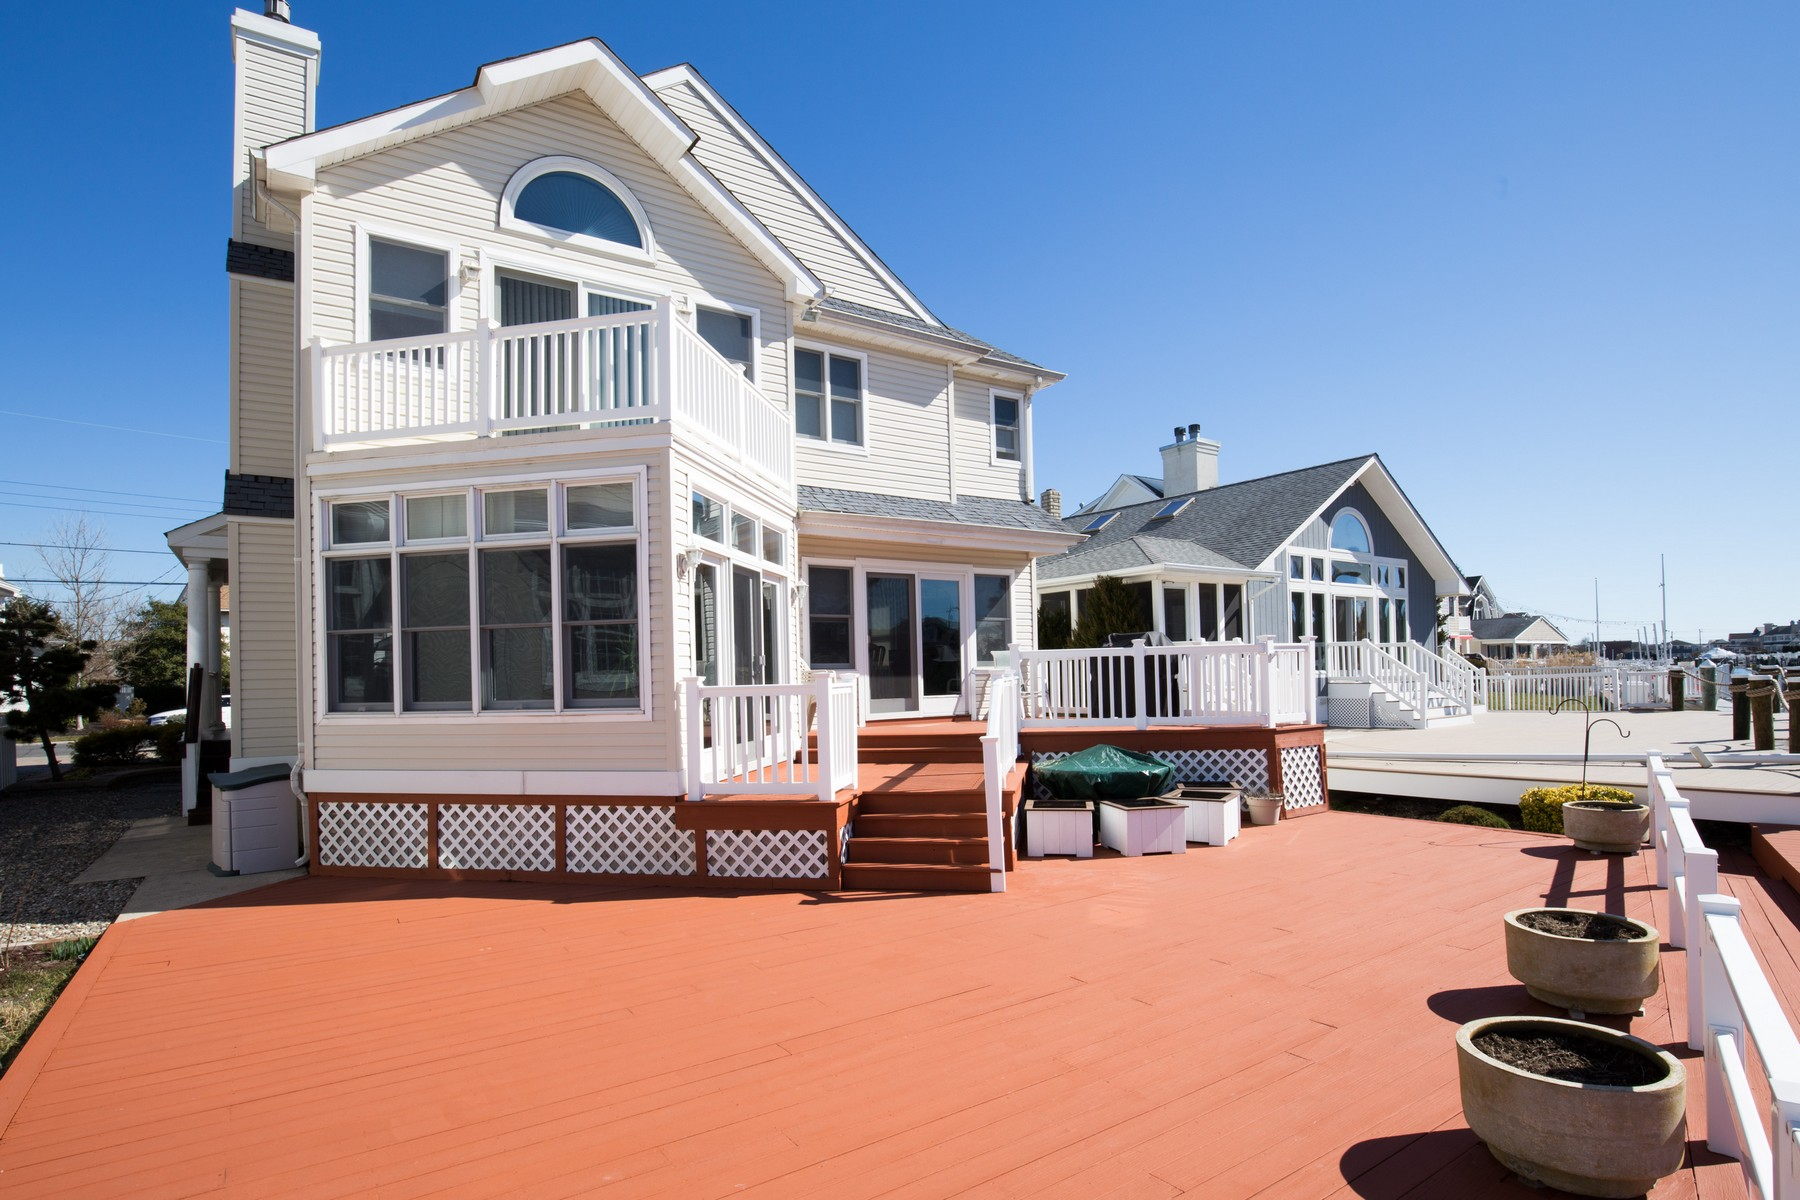 Single Family Home for Sale at Waterfront Home on Sunny Harbor Lagoon 52 Arkansas Avenue Ocean City, New Jersey, 08226 United States